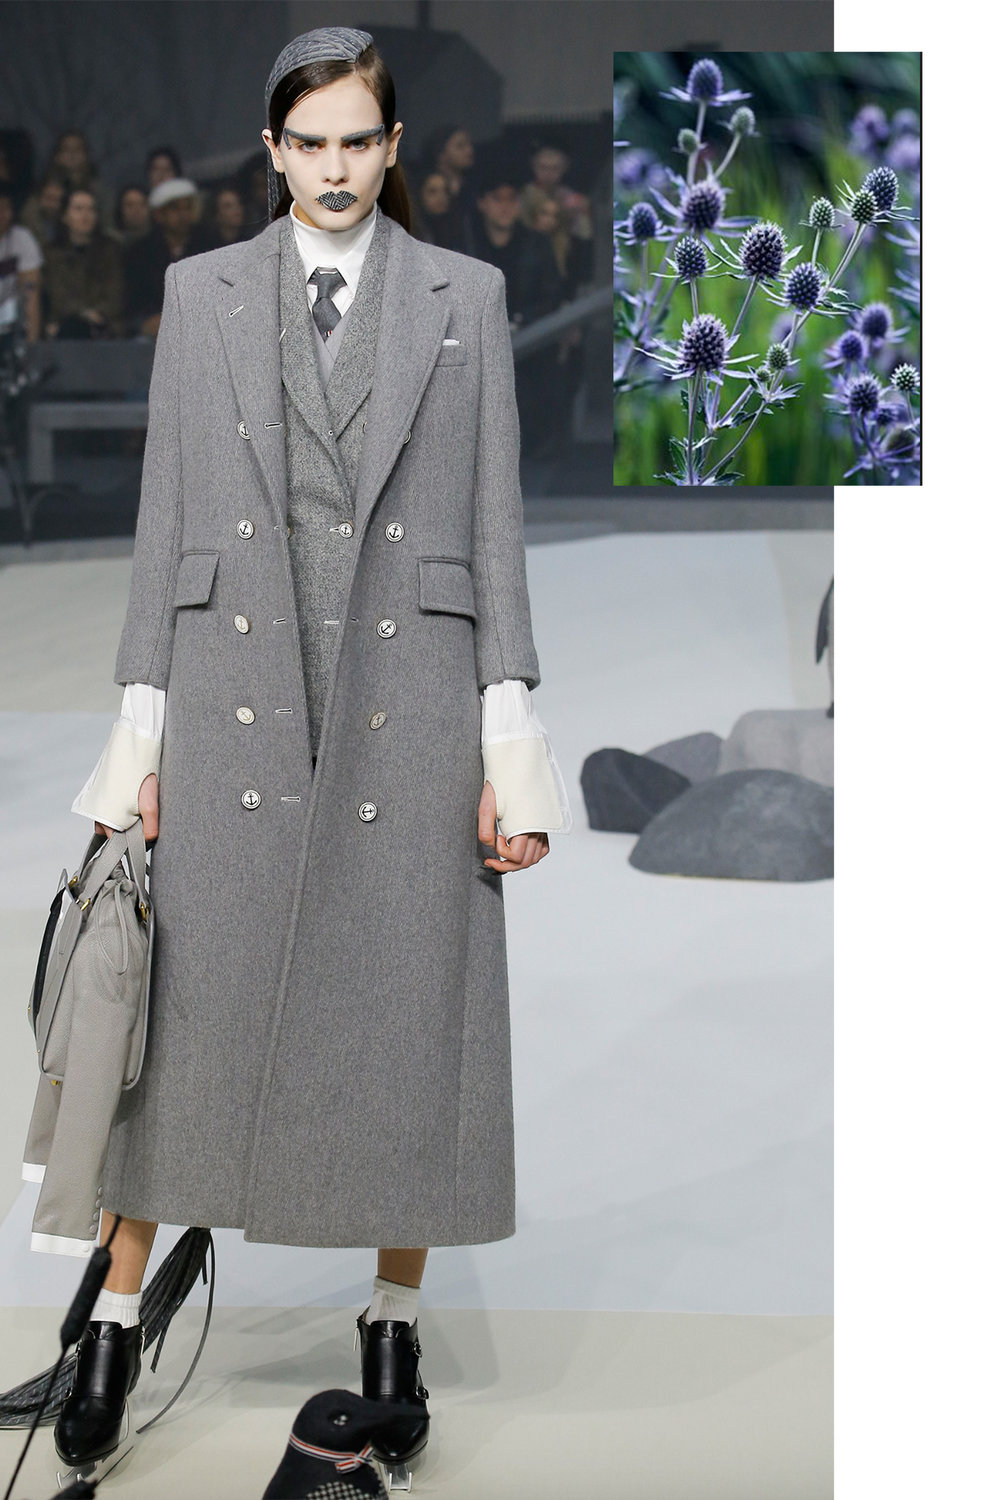 Thom Browne paired with Thistle